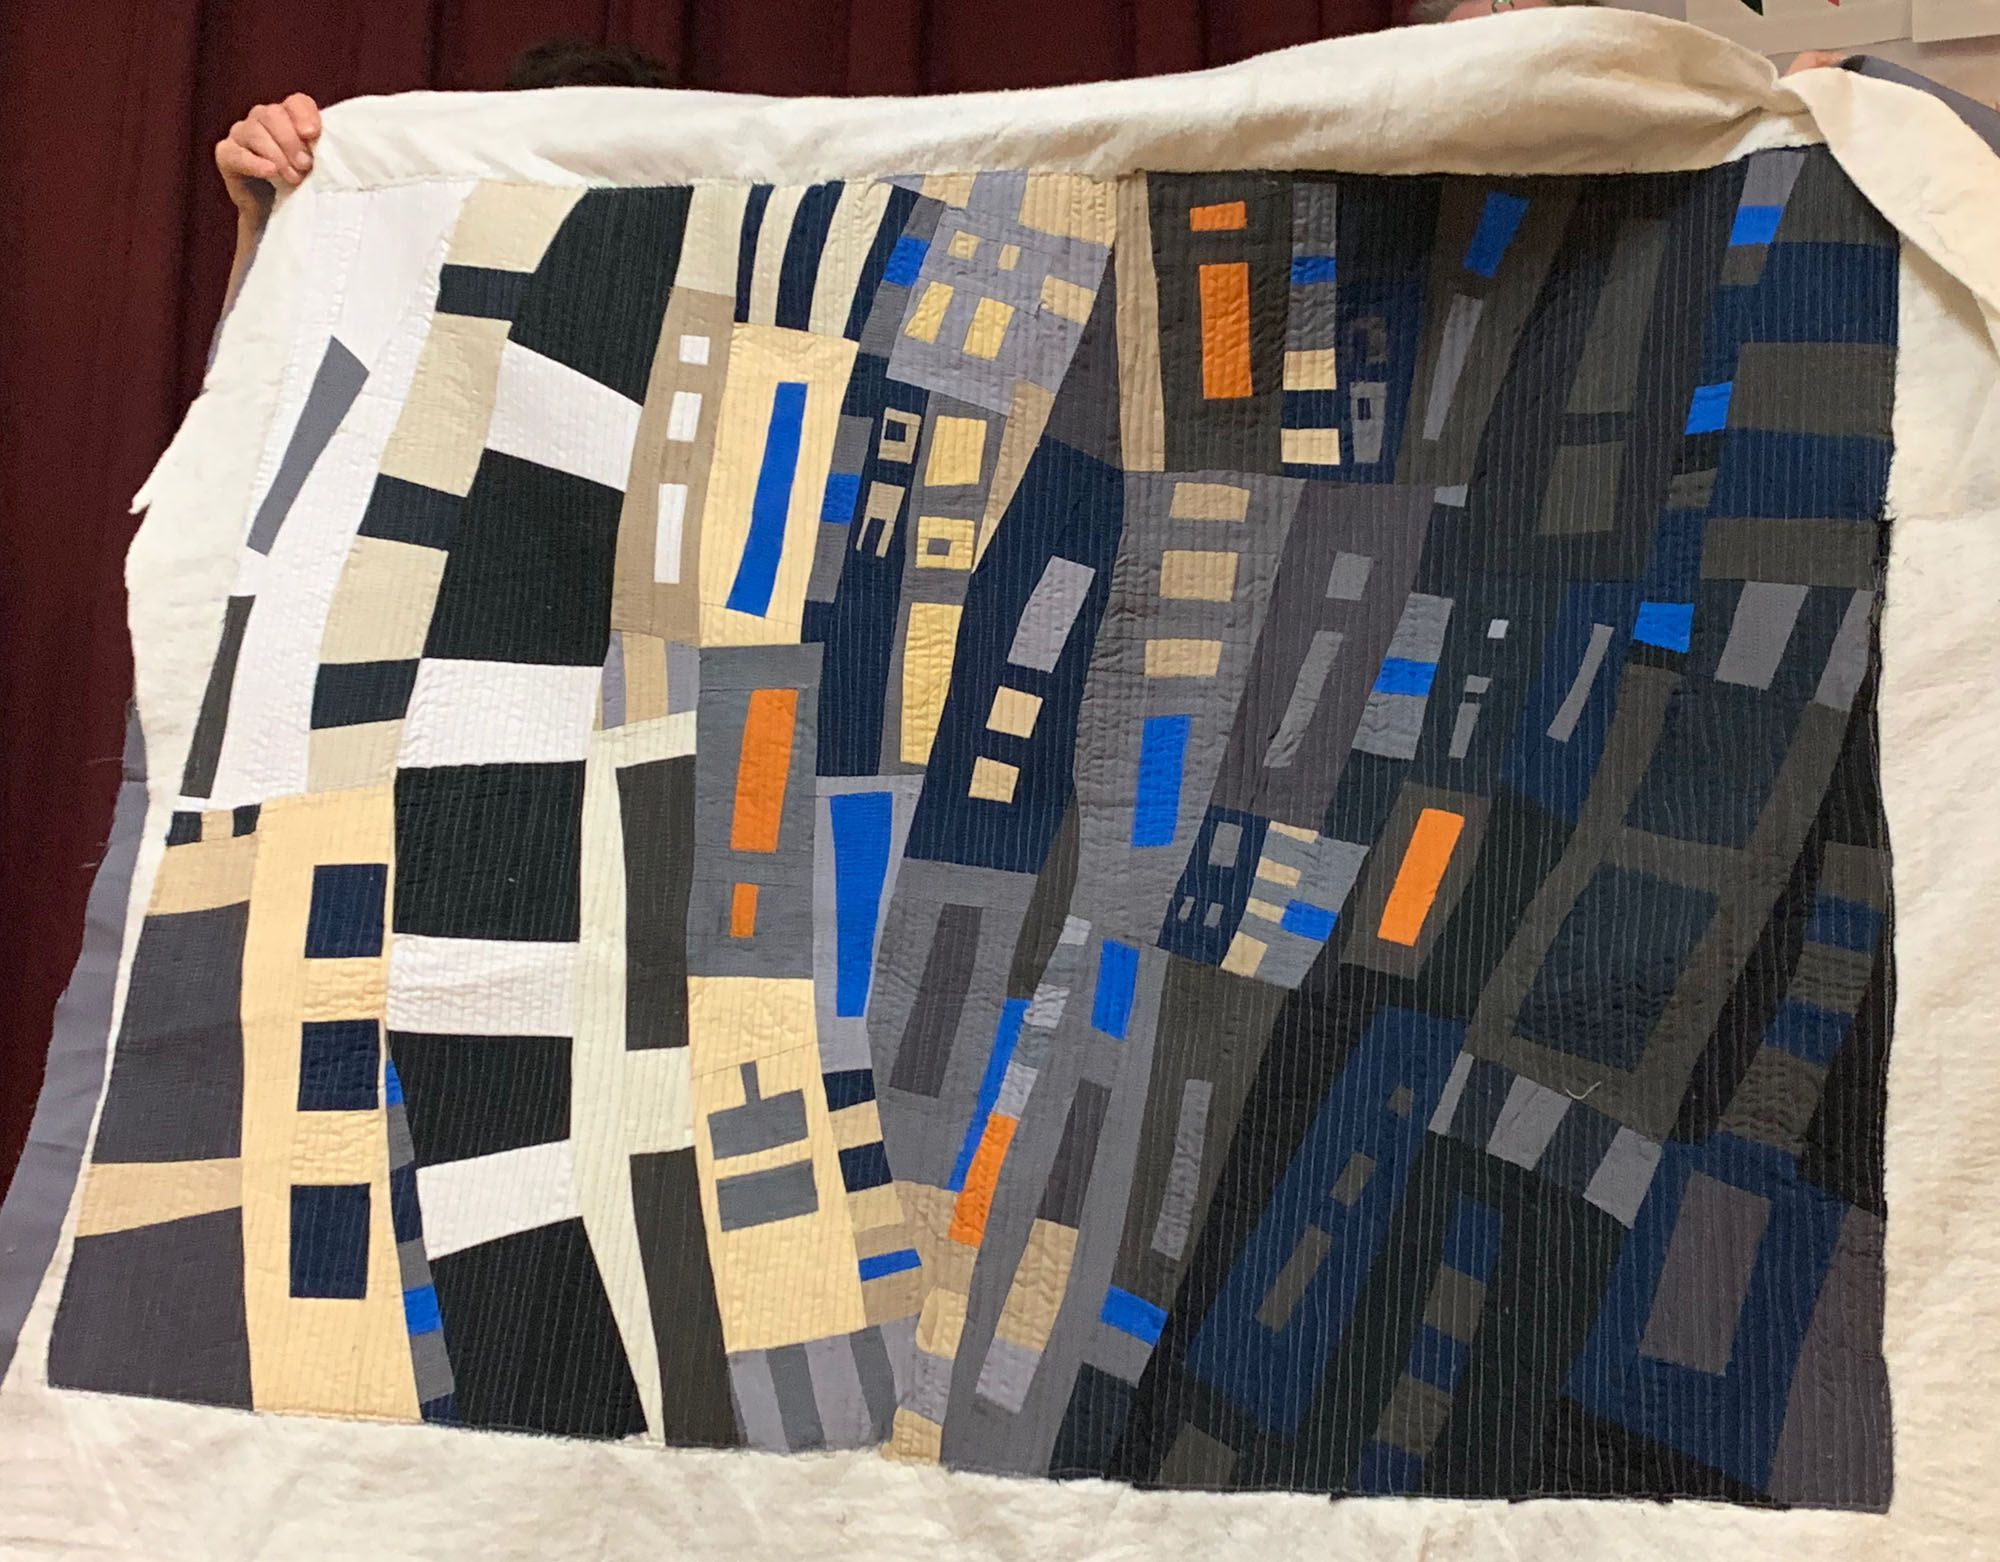 Quilt homework #1, by Ellen Piccolo